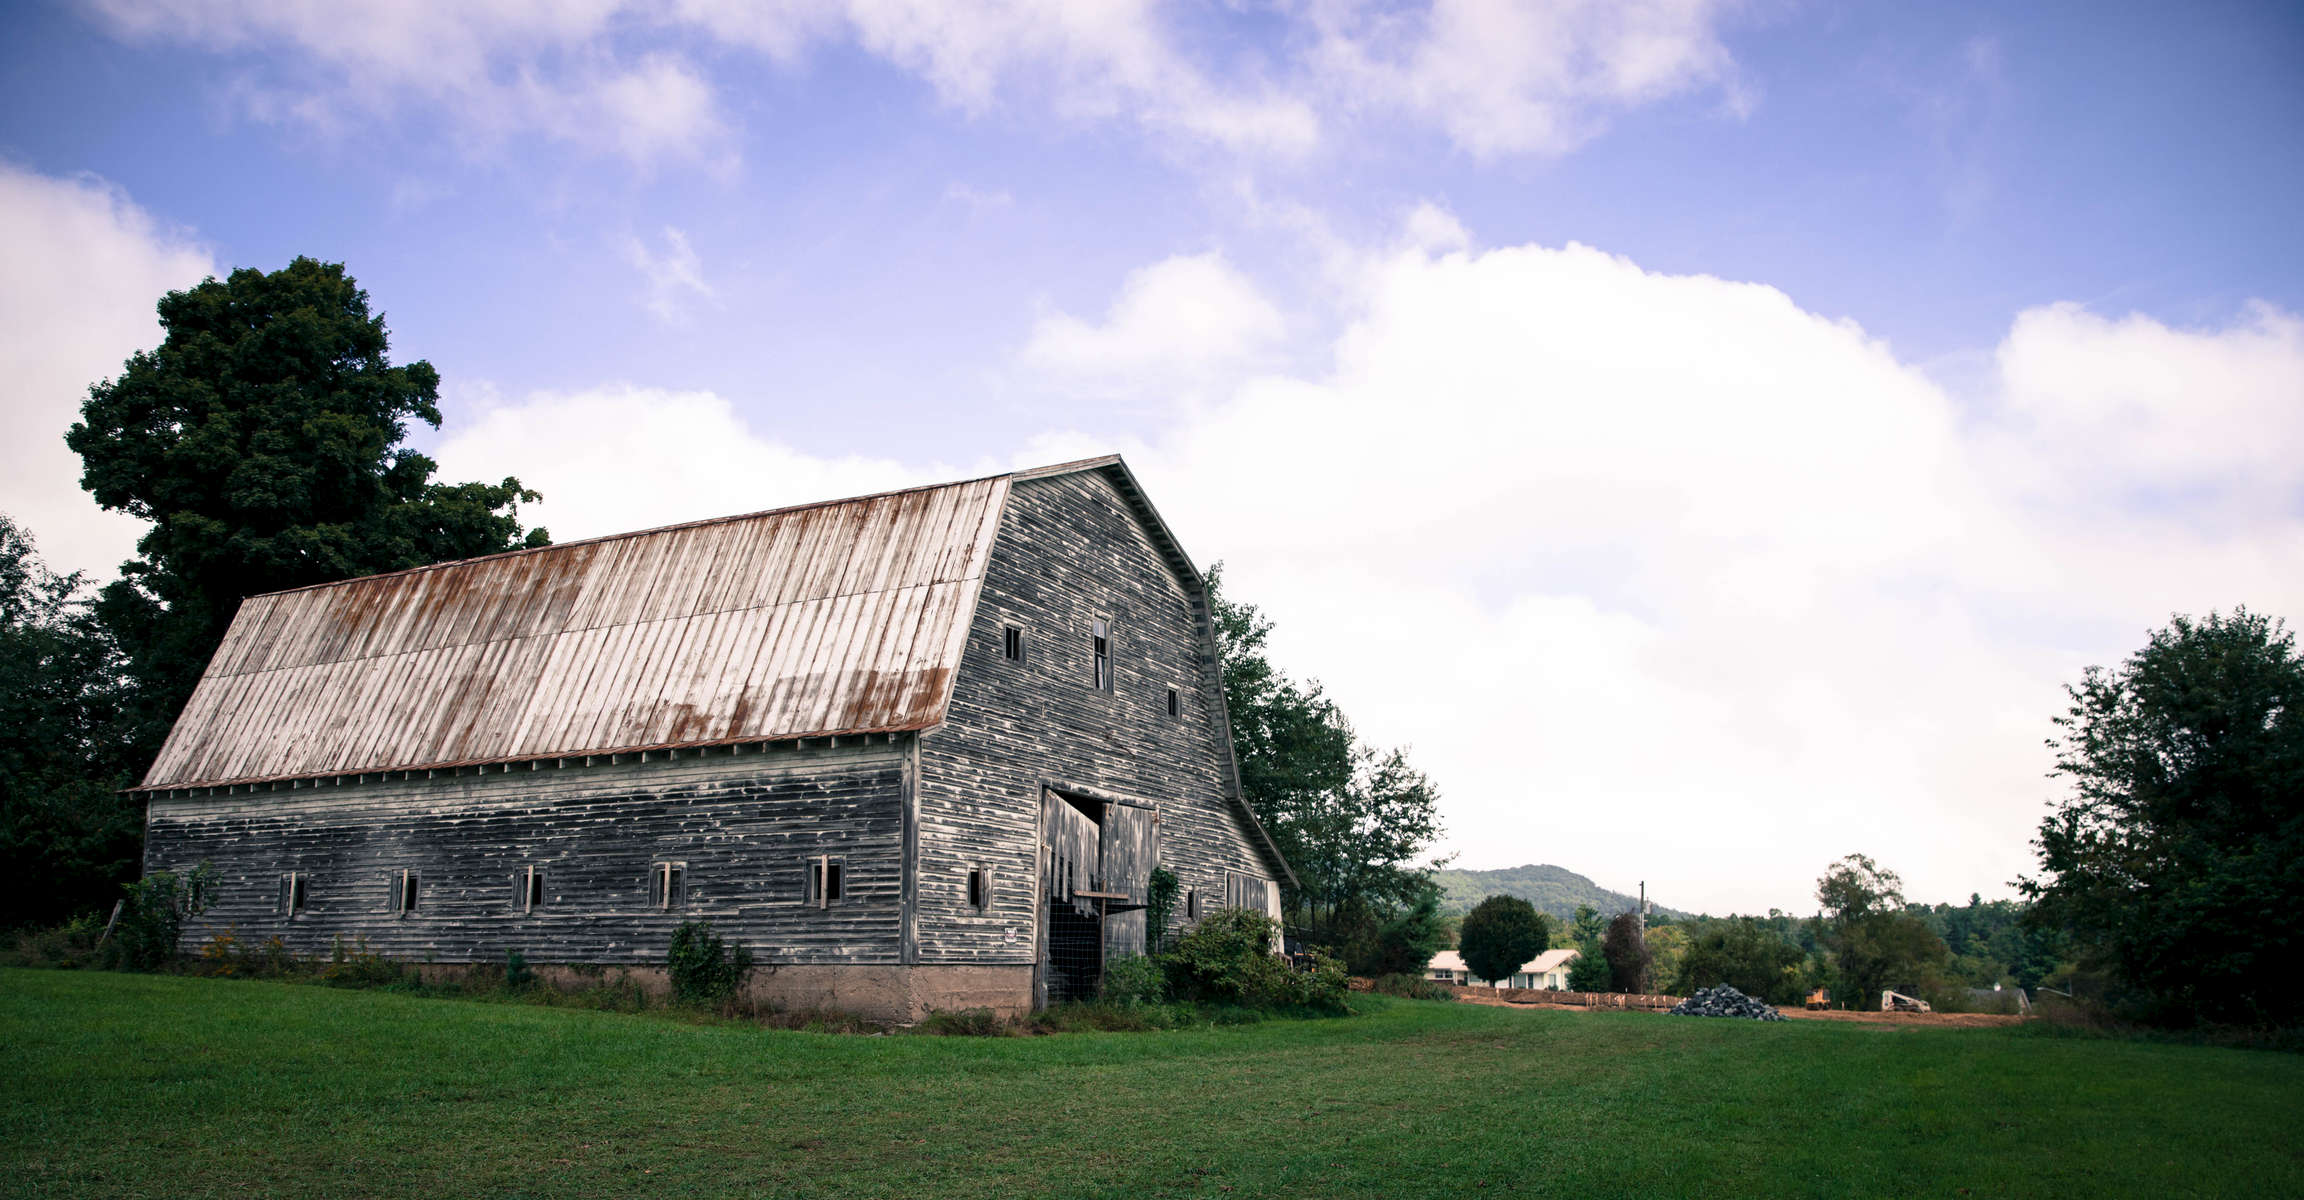 Greer barn, part of the Greer farm that's been on this corner of Watauga County since the 19th century. In 2016, the remaining 16 acres of the farm were sold to the Appalachian Regional Healthcare System, which plans to build an outpatient clinic at this location.